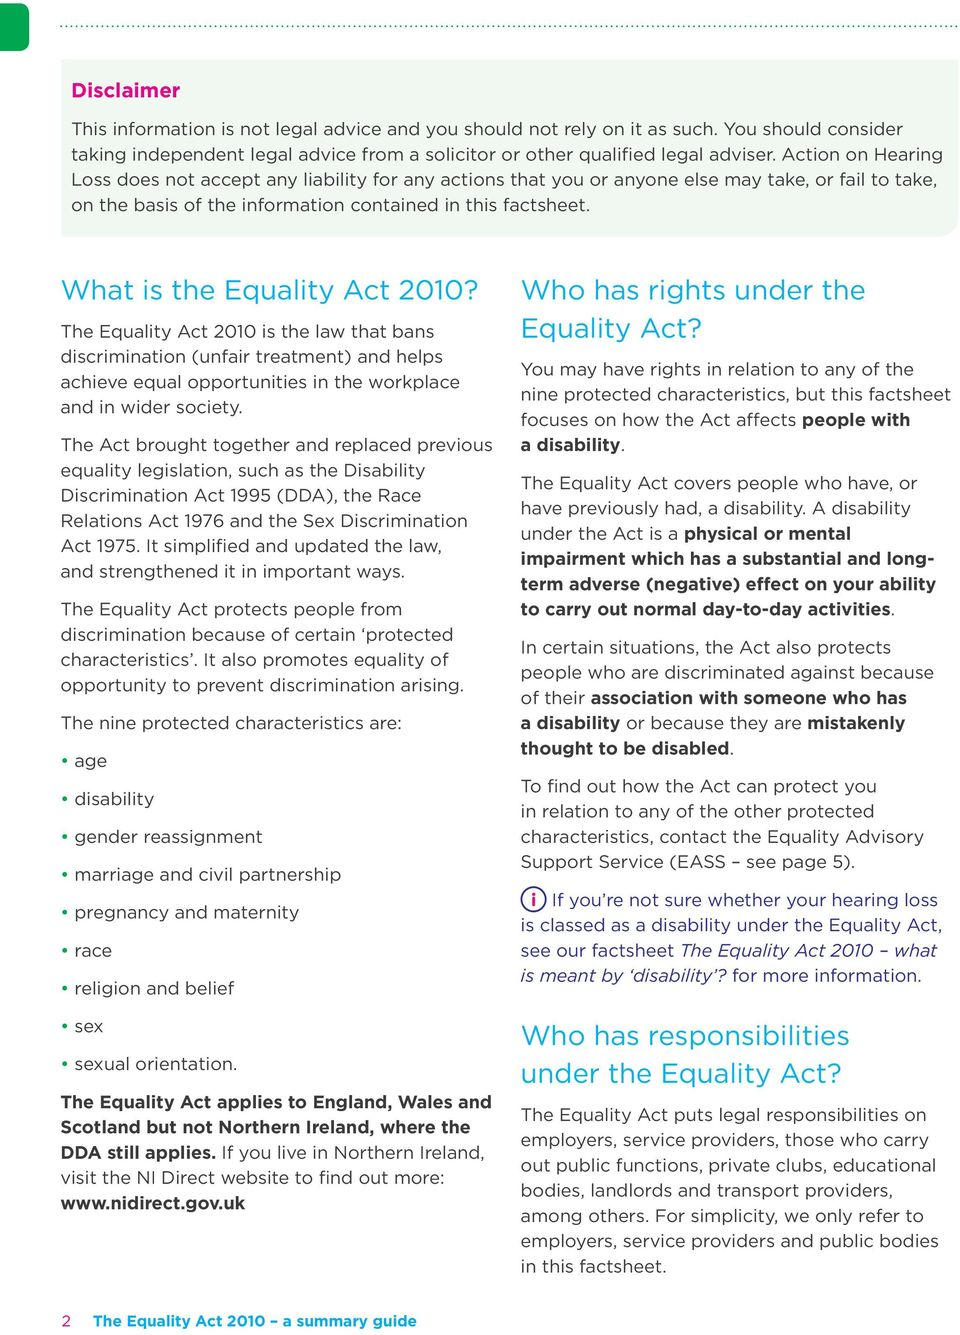 What is the Equality Act 2010? The Equality Act 2010 is the law that bans discrimination (unfair treatment) and helps achieve equal opportunities in the workplace and in wider society.